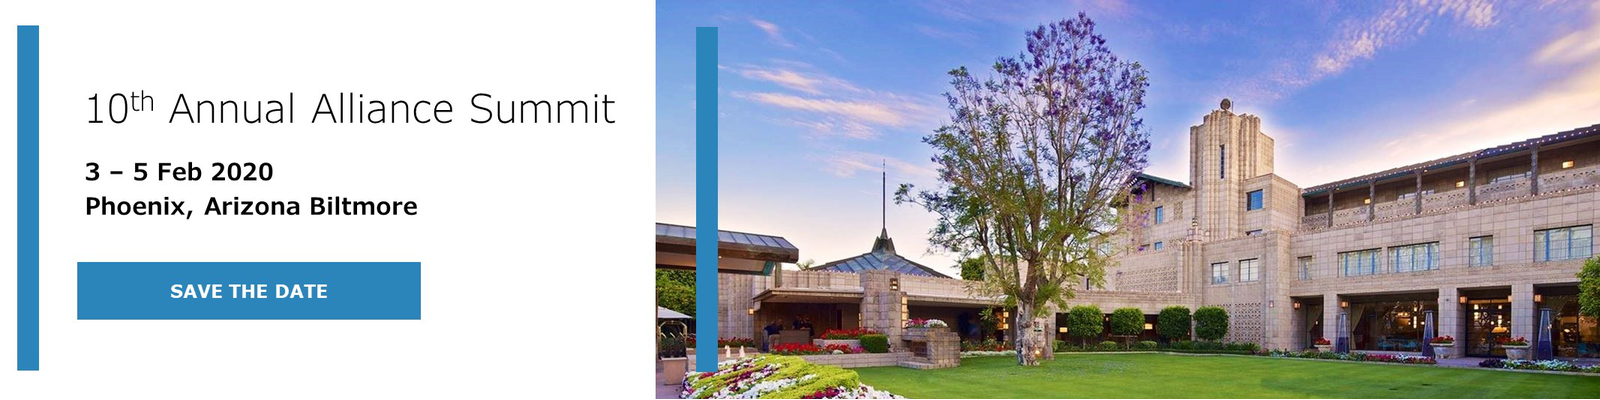 Save the Date - 10th Annual Alliance Summit Feb 3-5 2020 at the Phoenix, Arizona Biltmore